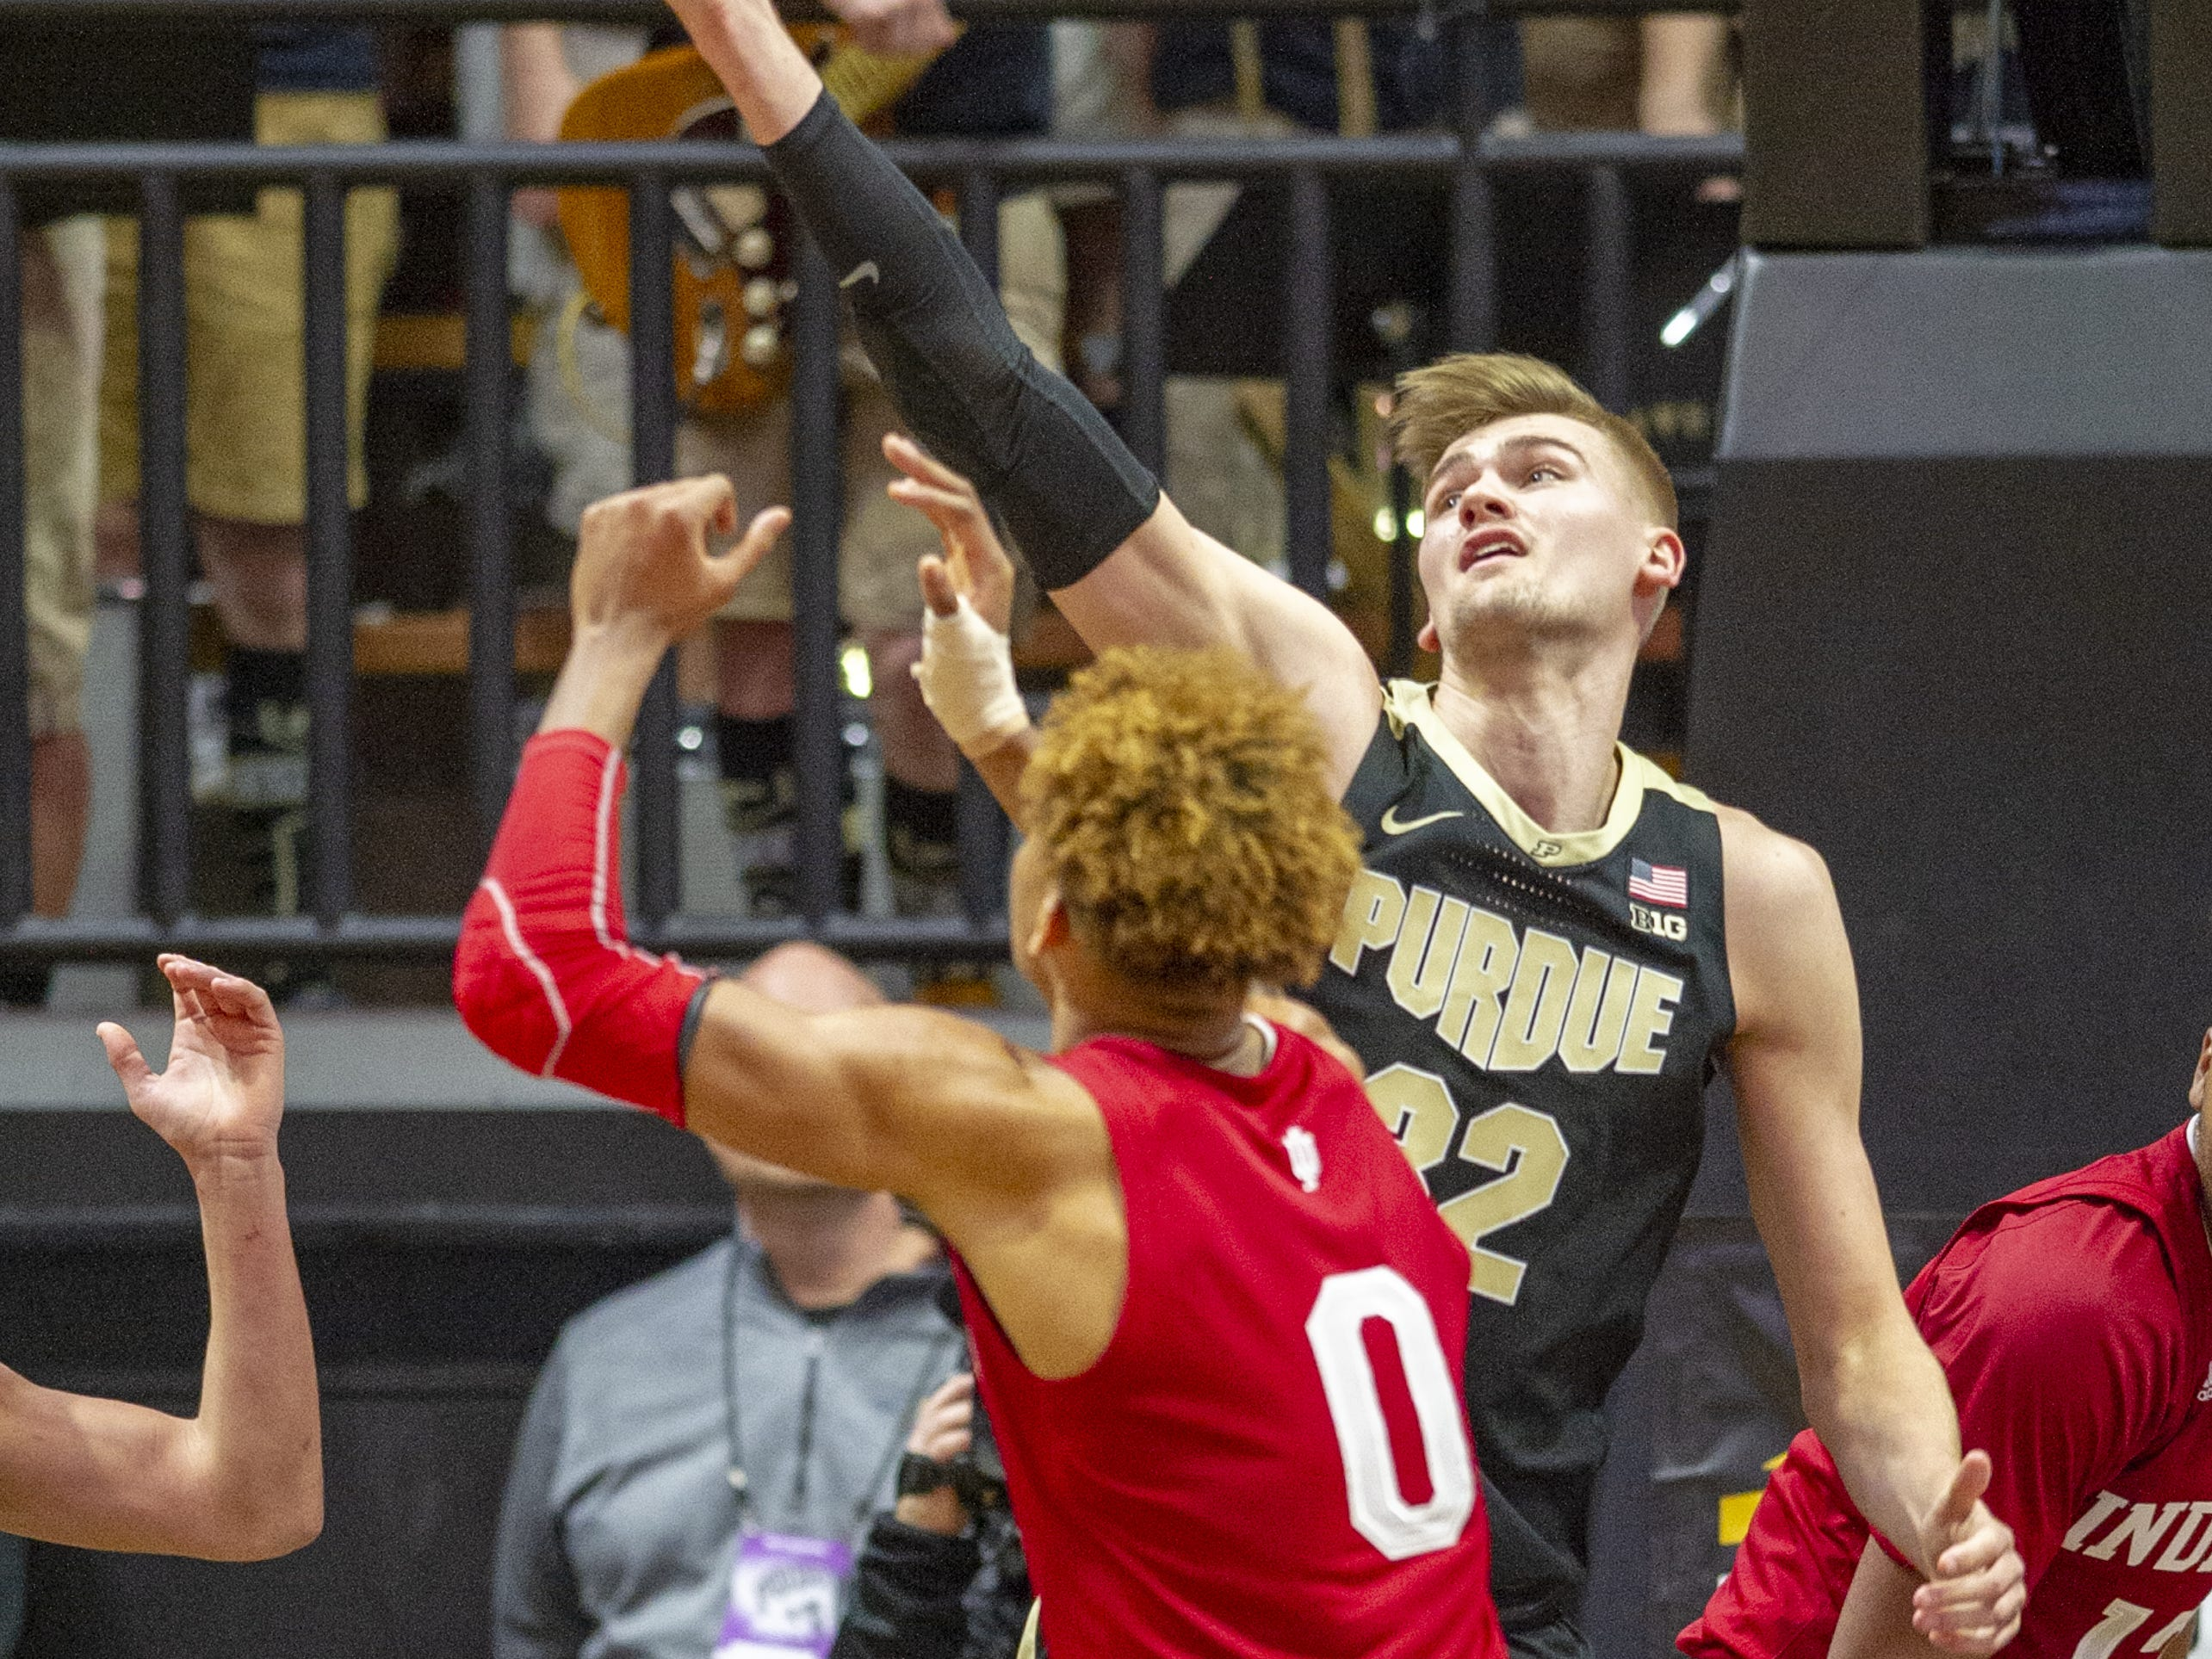 Purdue Boilermakers center Matt Haarms (32) goes after a rebound with Indiana Hoosiers guard Romeo Langford (0) during the second half.